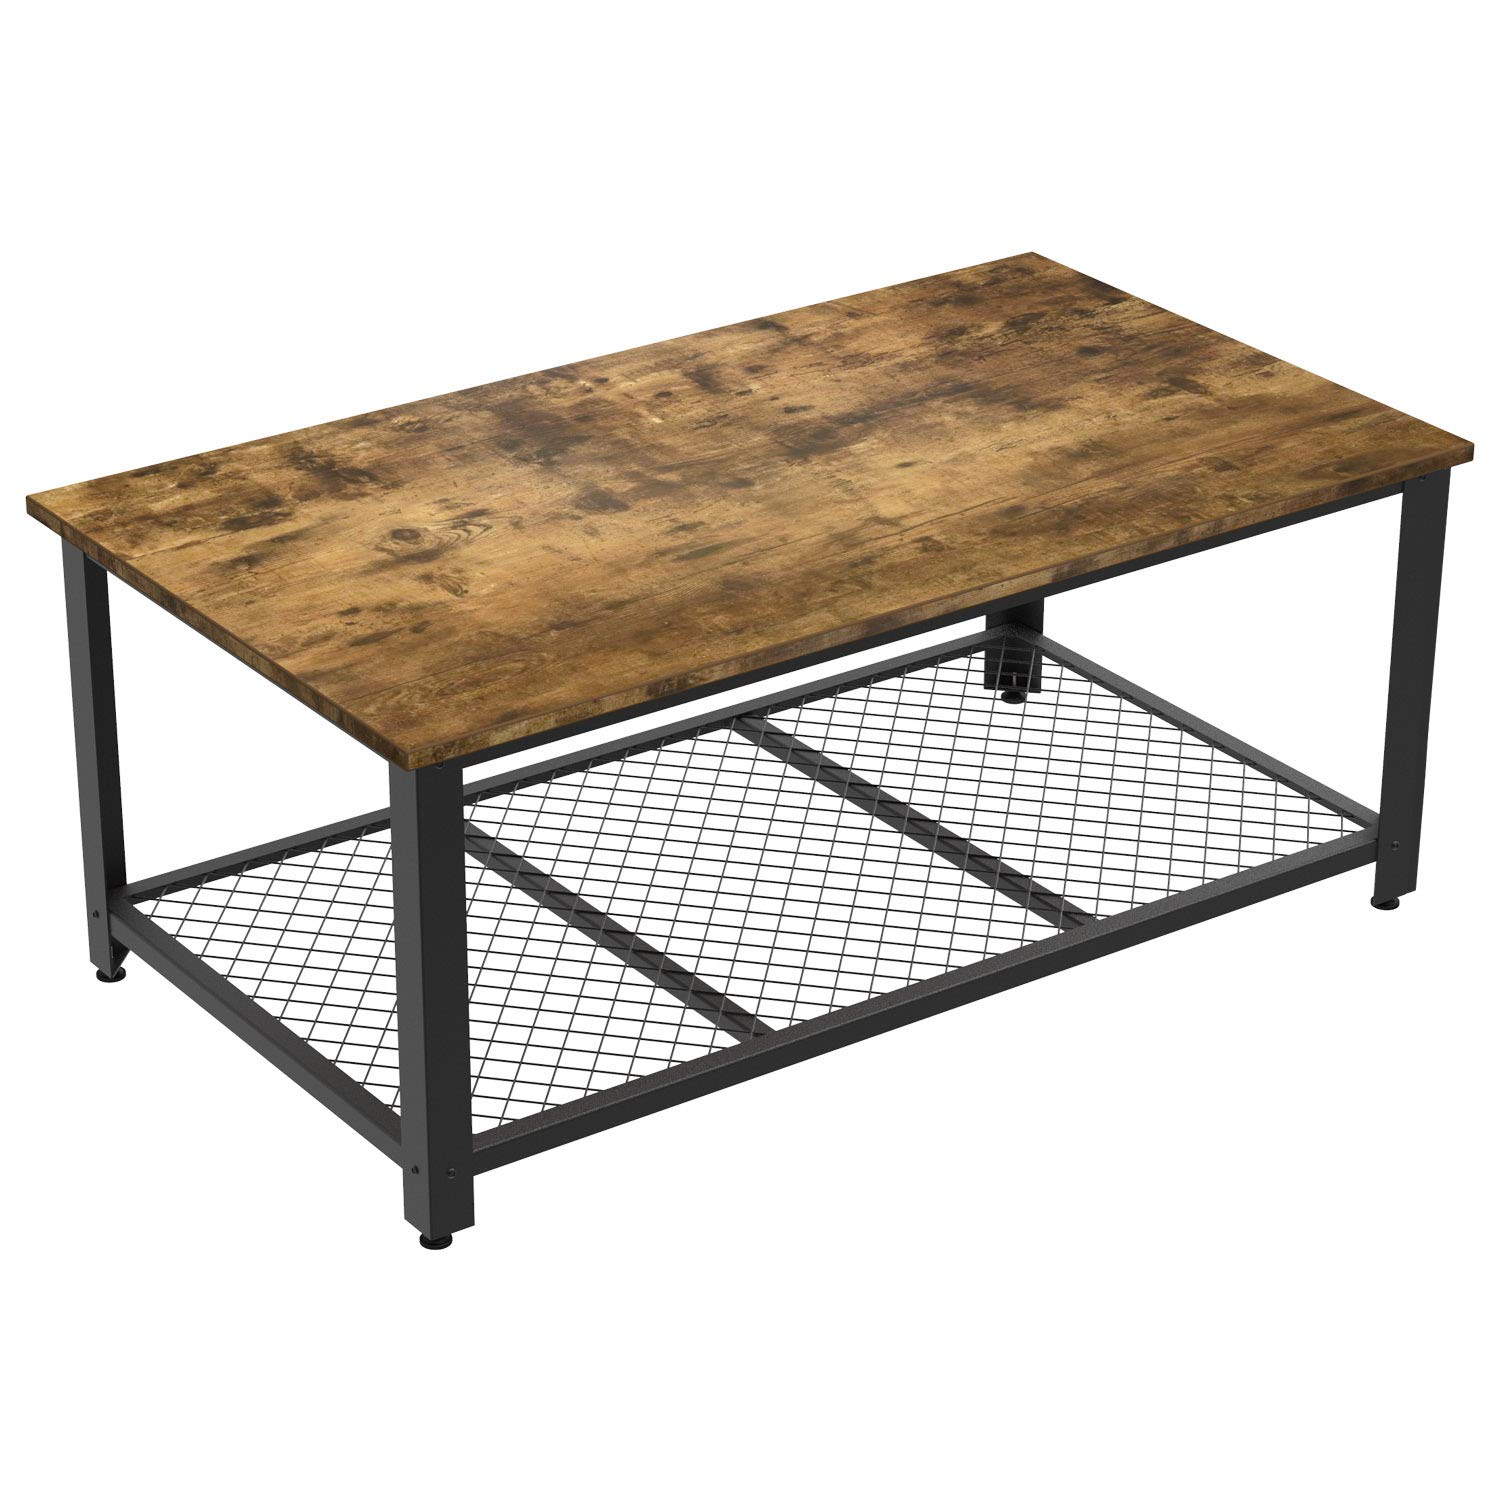 IRONCK Industrial Coffee Table for Living Room, Tea Table with Storage Shelf, Wood Look Accent Furniture with Metal Frame, Rustic Home Decor, Vintage Brown by IRONCK